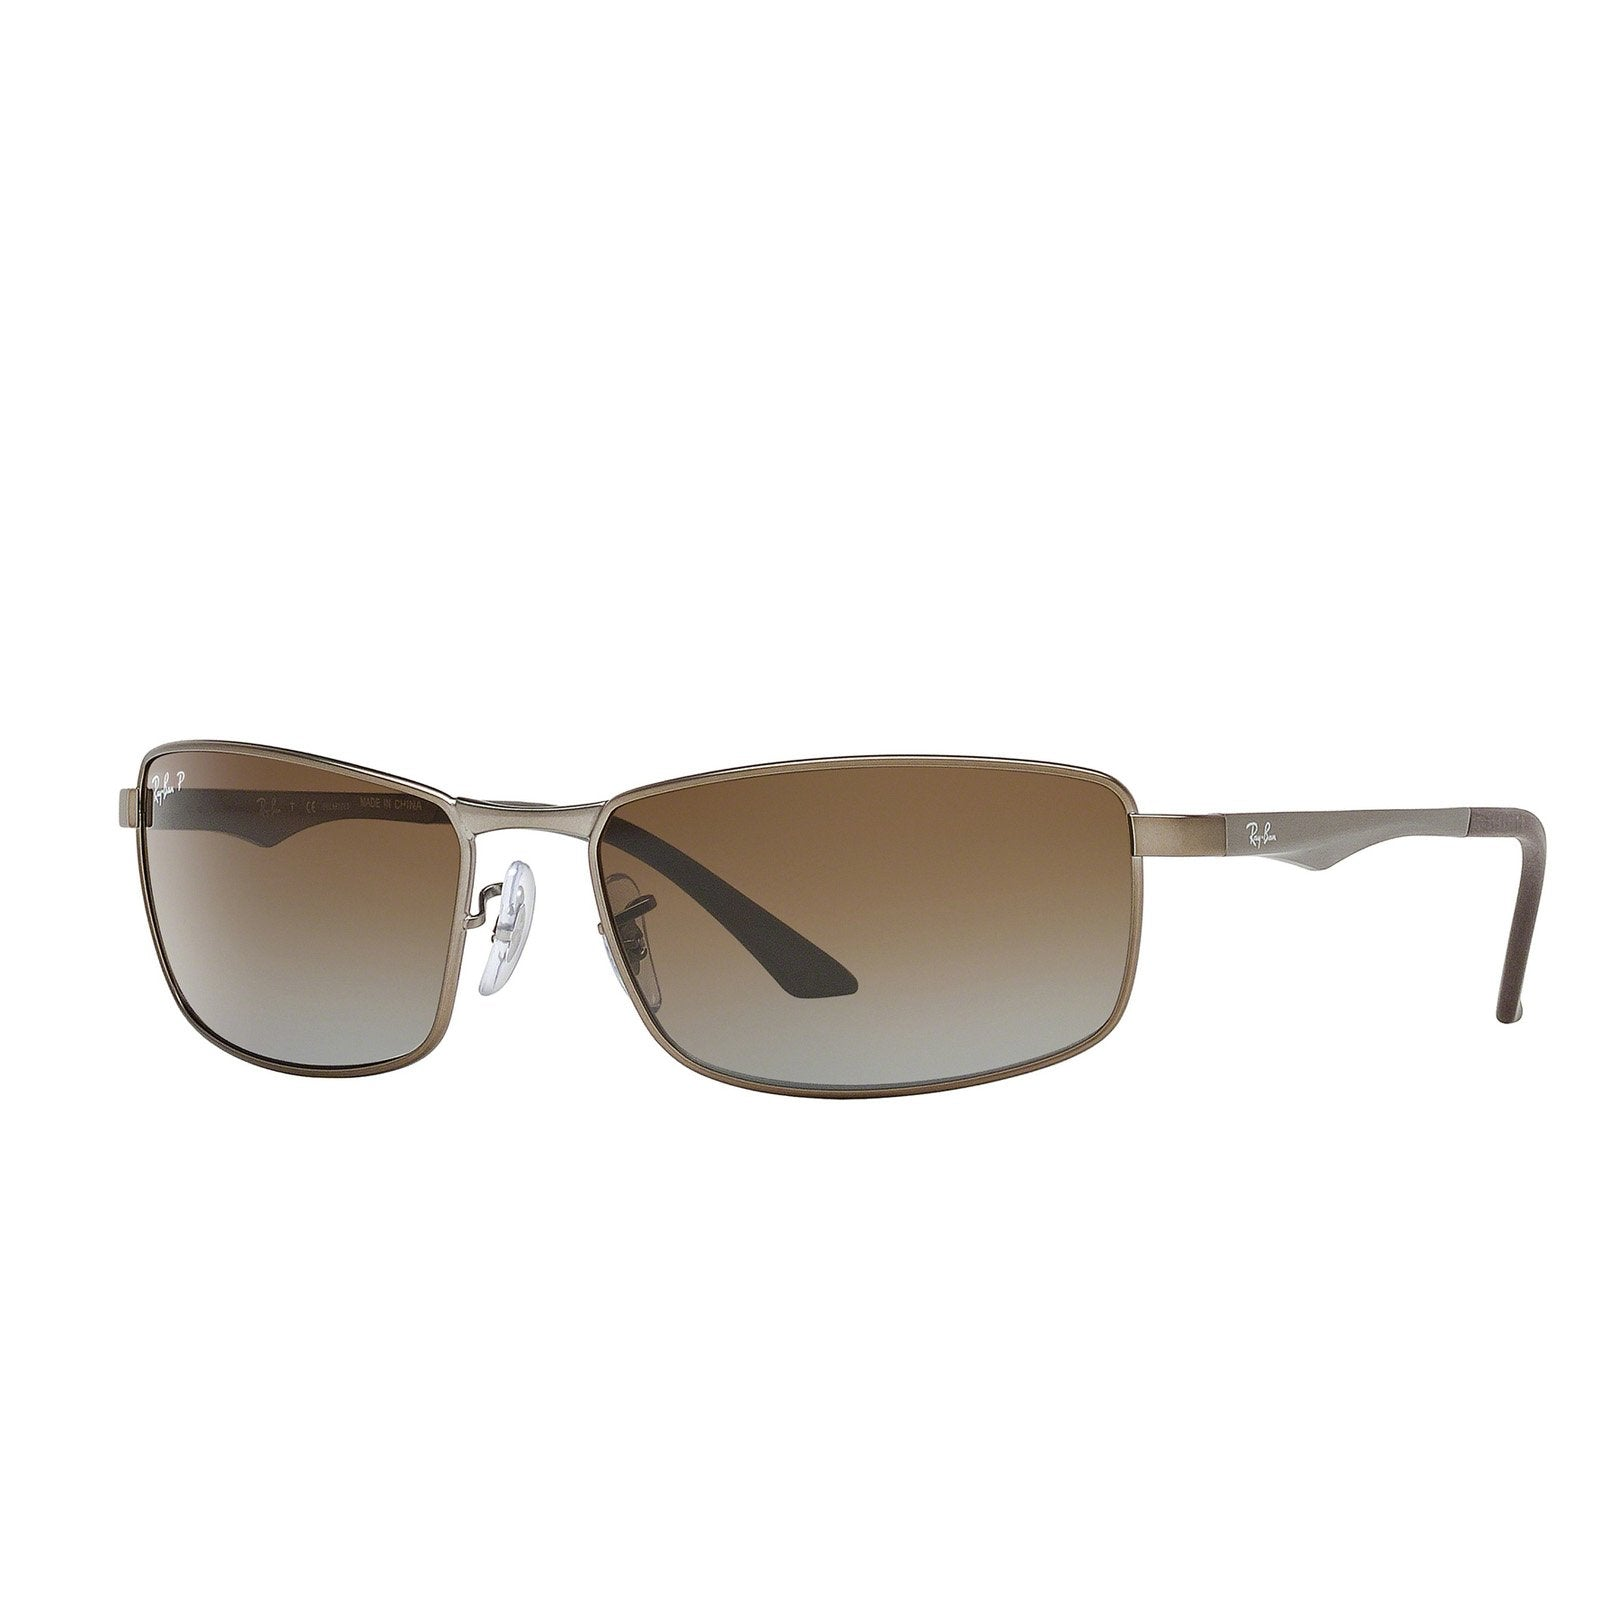 Ray-Ban RB3498 029/T5 Sunglasses